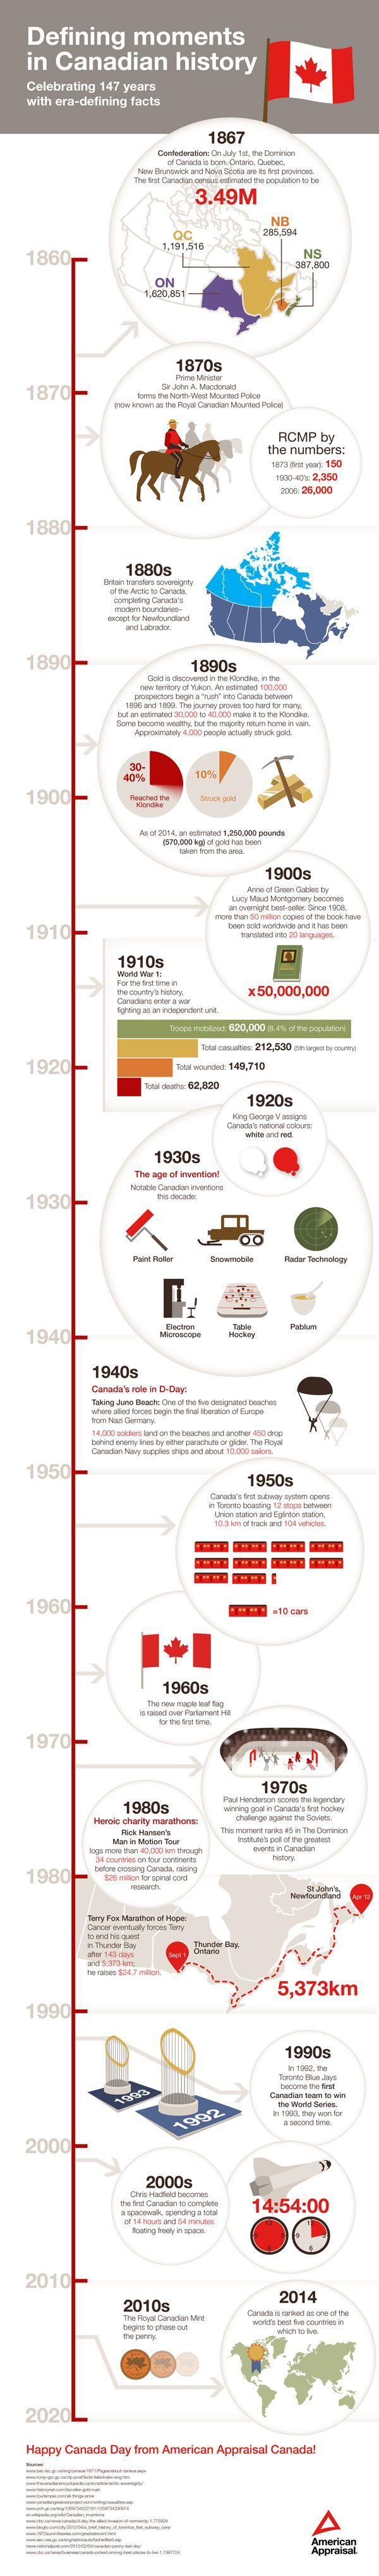 Defining Moments in Canadian History infographic #infographics